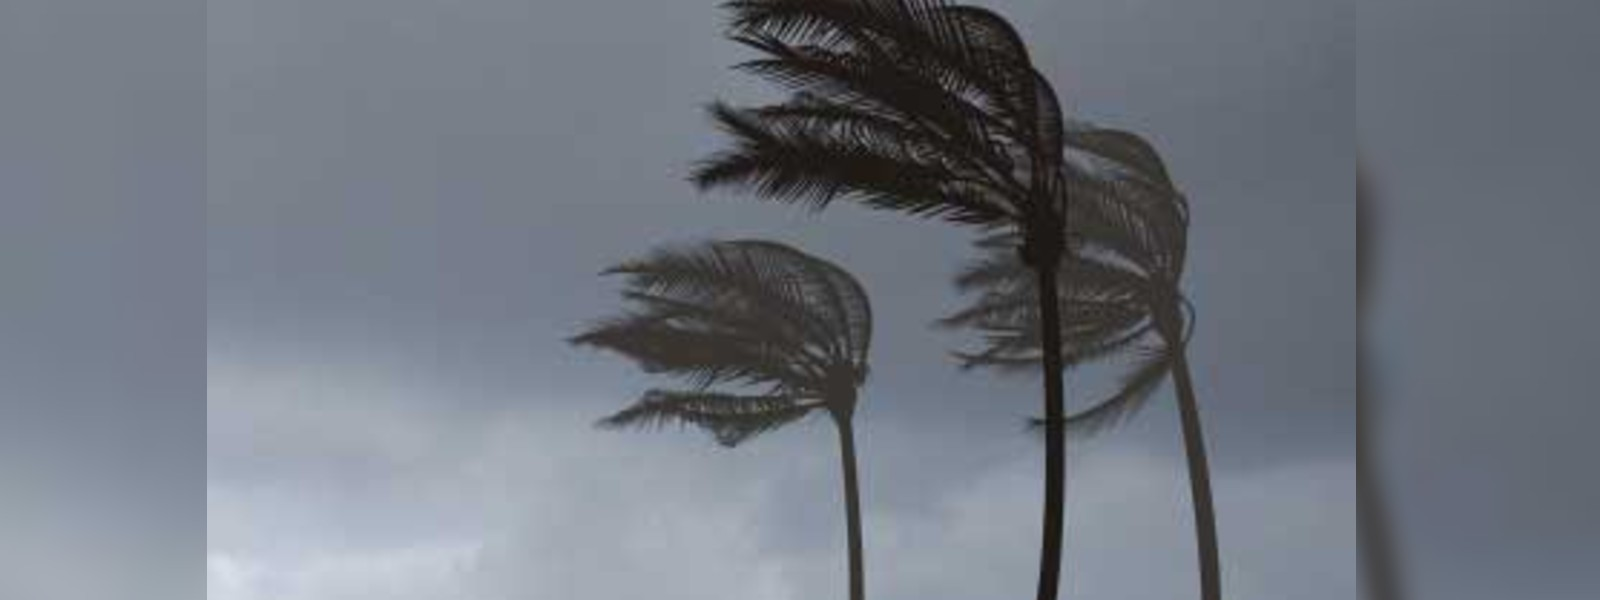 Weather update : Strong winds of 50kmph expected